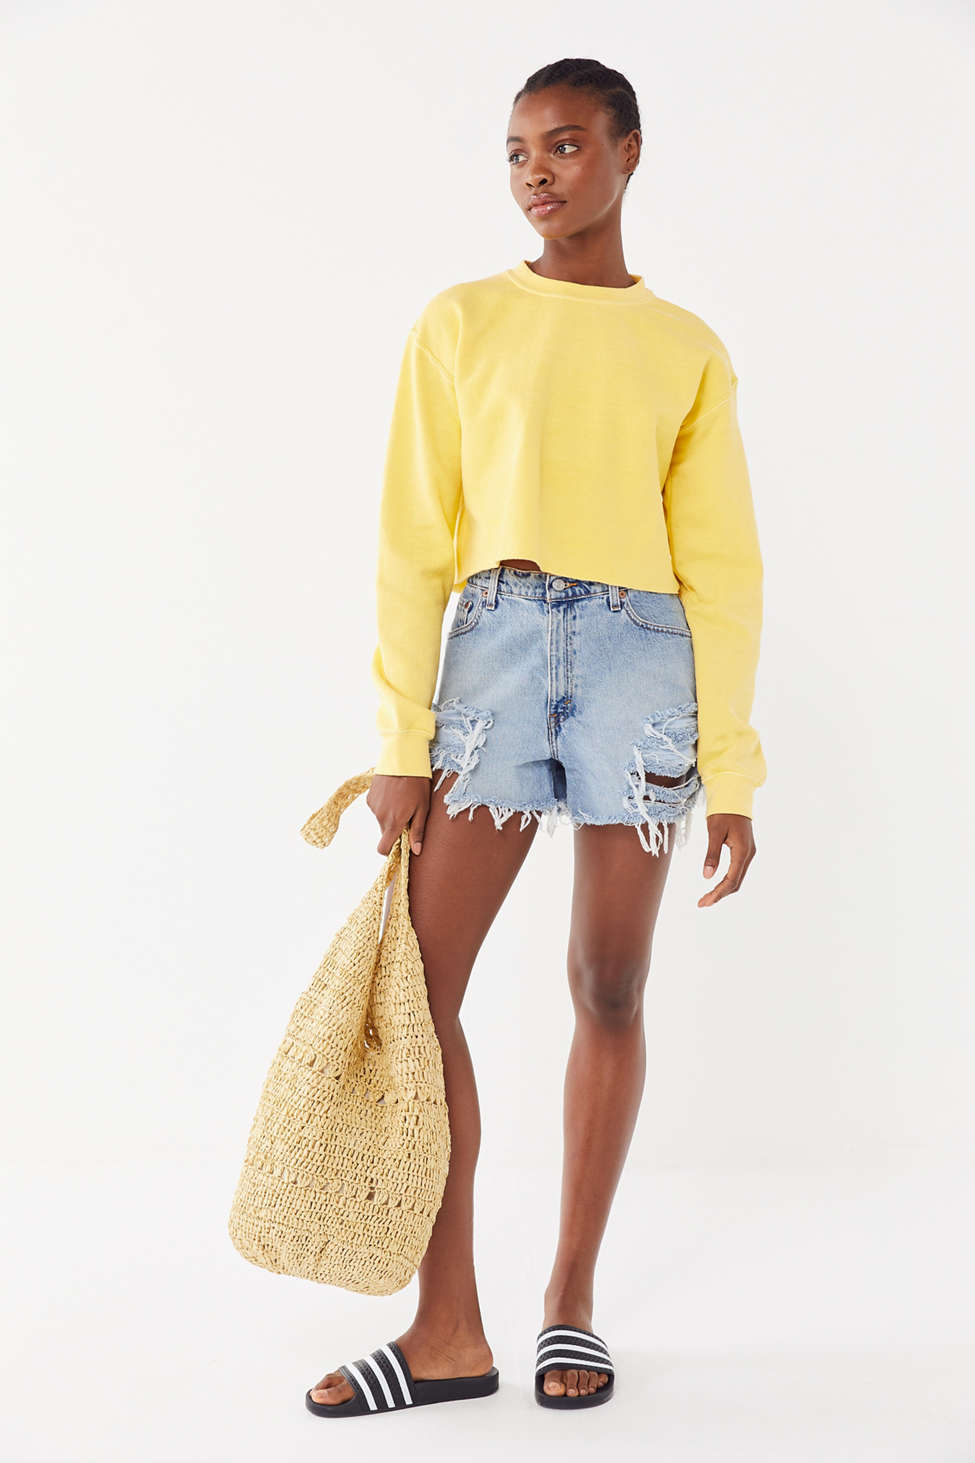 Project Social T It's All Good Cropped Tee by Project Social T